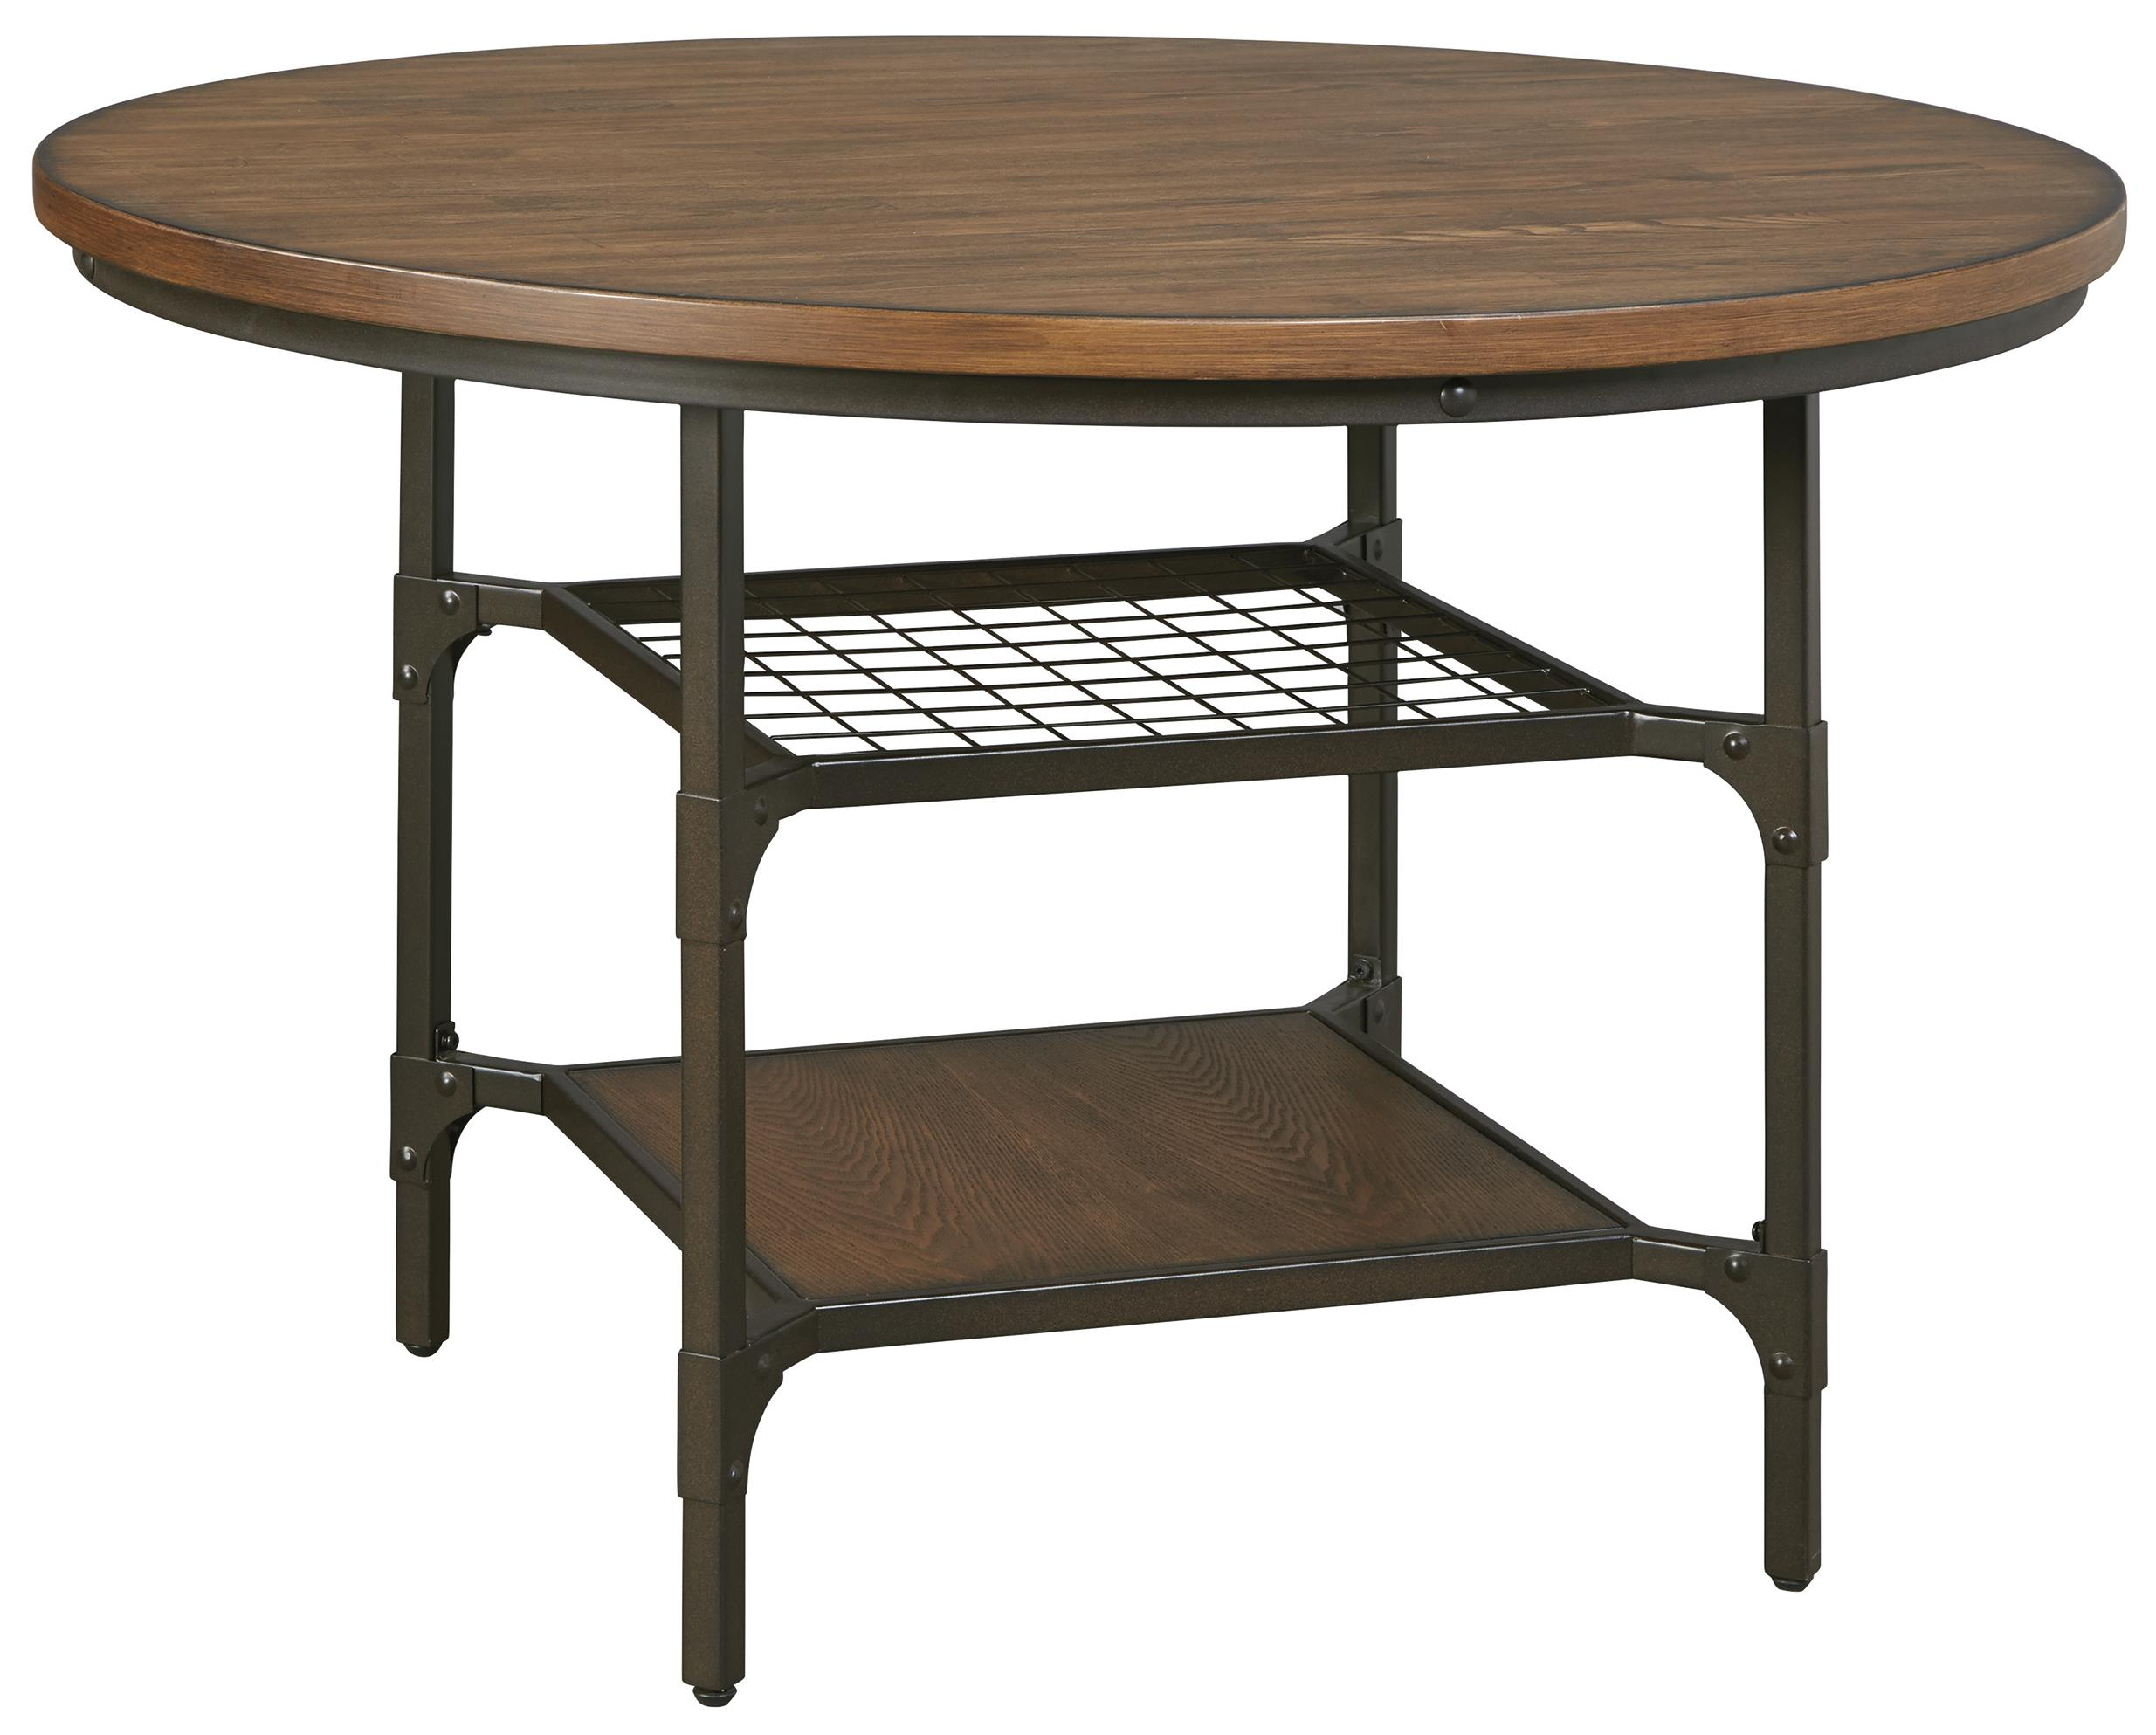 Signature Design by Ashley Rolena Round Dining Room Table - Item Number: D405-15